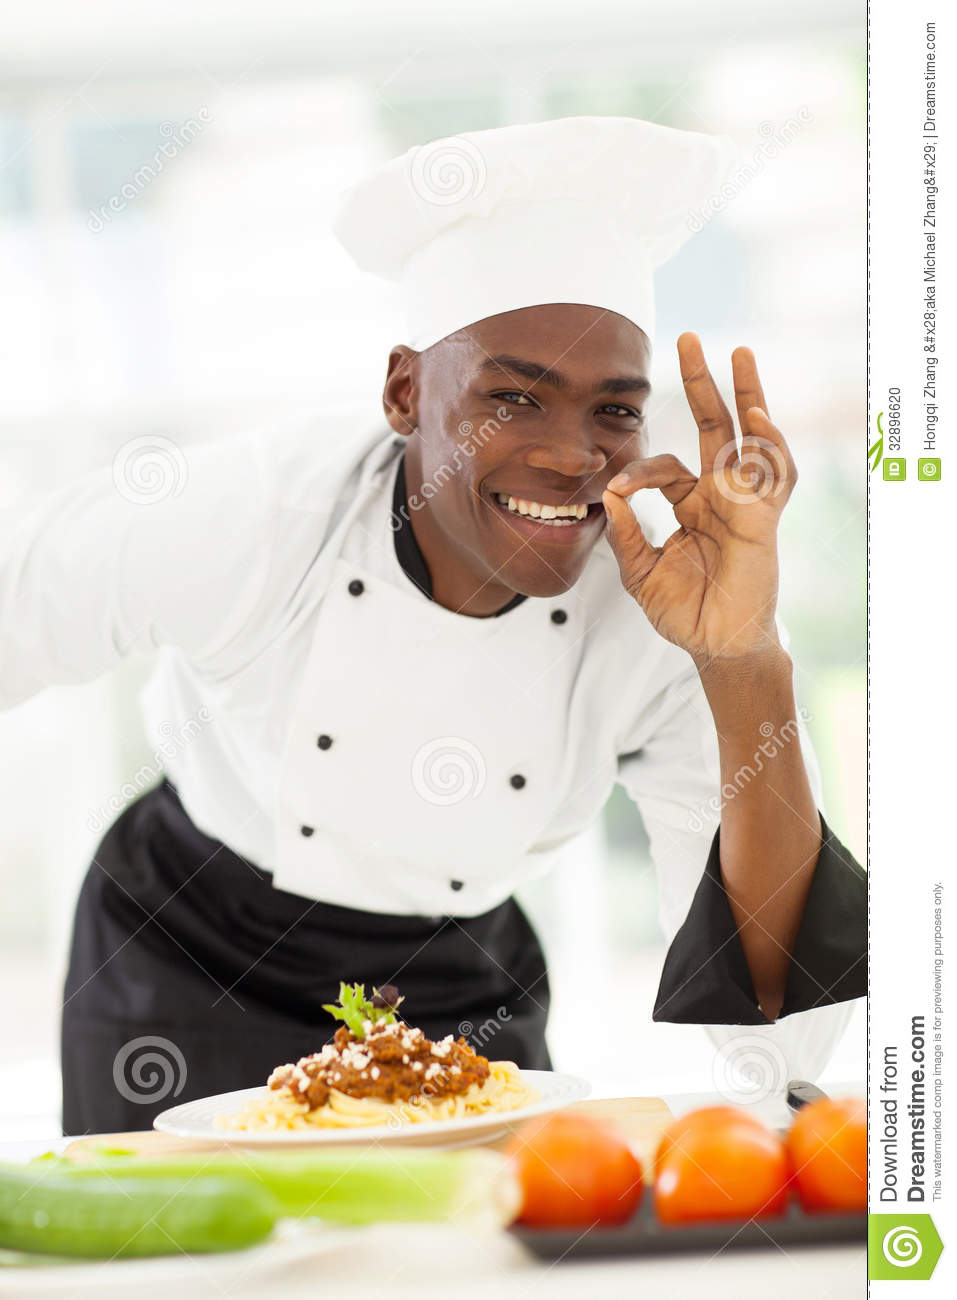 Afro Chef Delicious Stock Photo - Image: 32896620